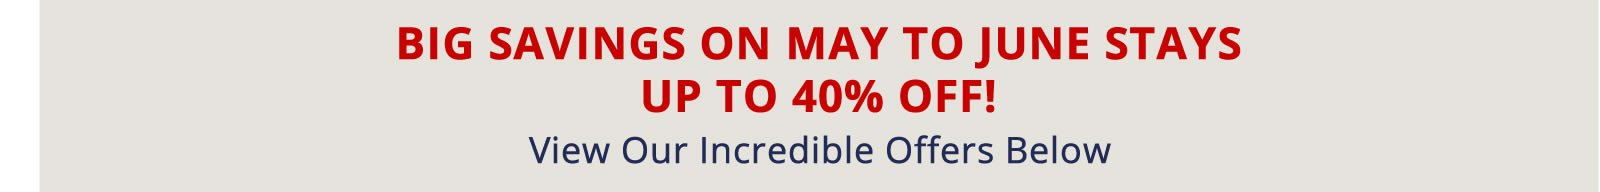 Book Now for Big Savings on May to June Stays. Up to 40% off!